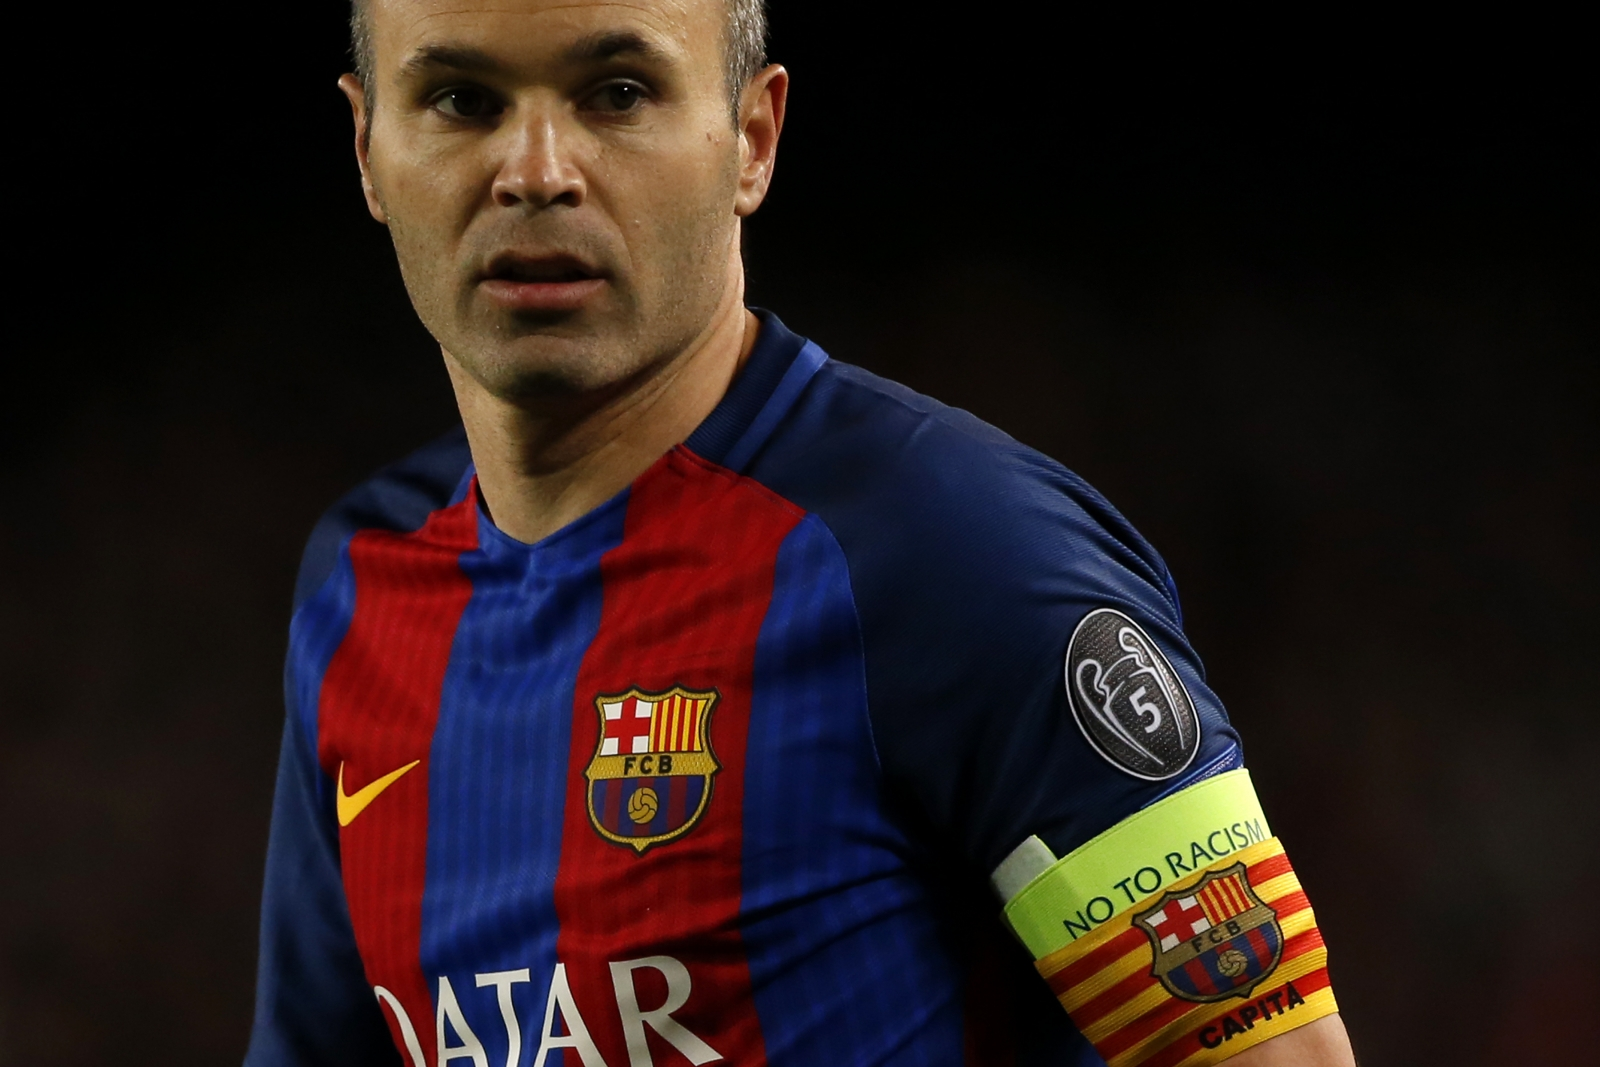 Andres Iniesta a major doubt for Barcelona derby at Espanyol but